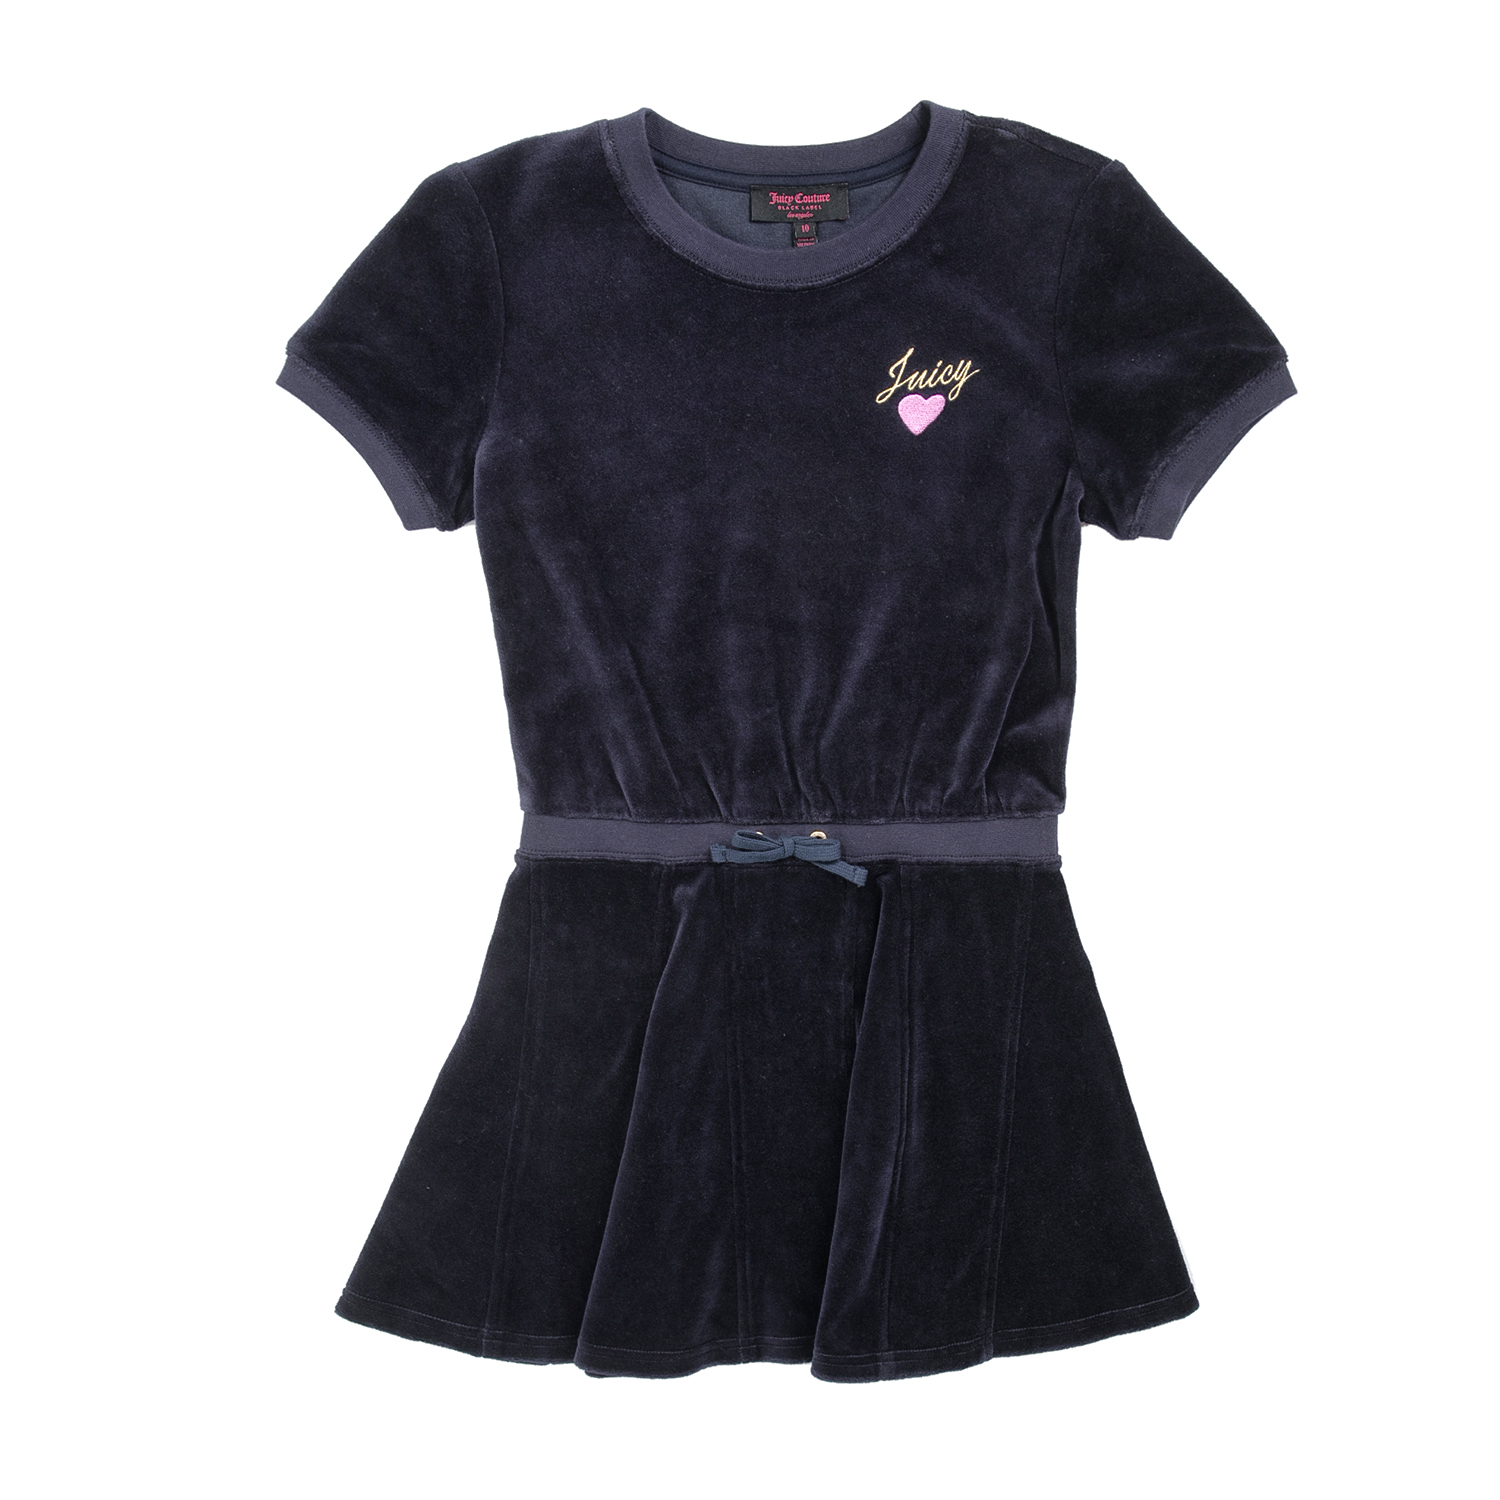 JUICY COUTURE KIDS - Κοριτσίστικο φόρεμα JUICY COUTURE HEART EXPRESSIONS μπλε παιδικά girls ρούχα φορέματα κοντομάνικα αμάνικα